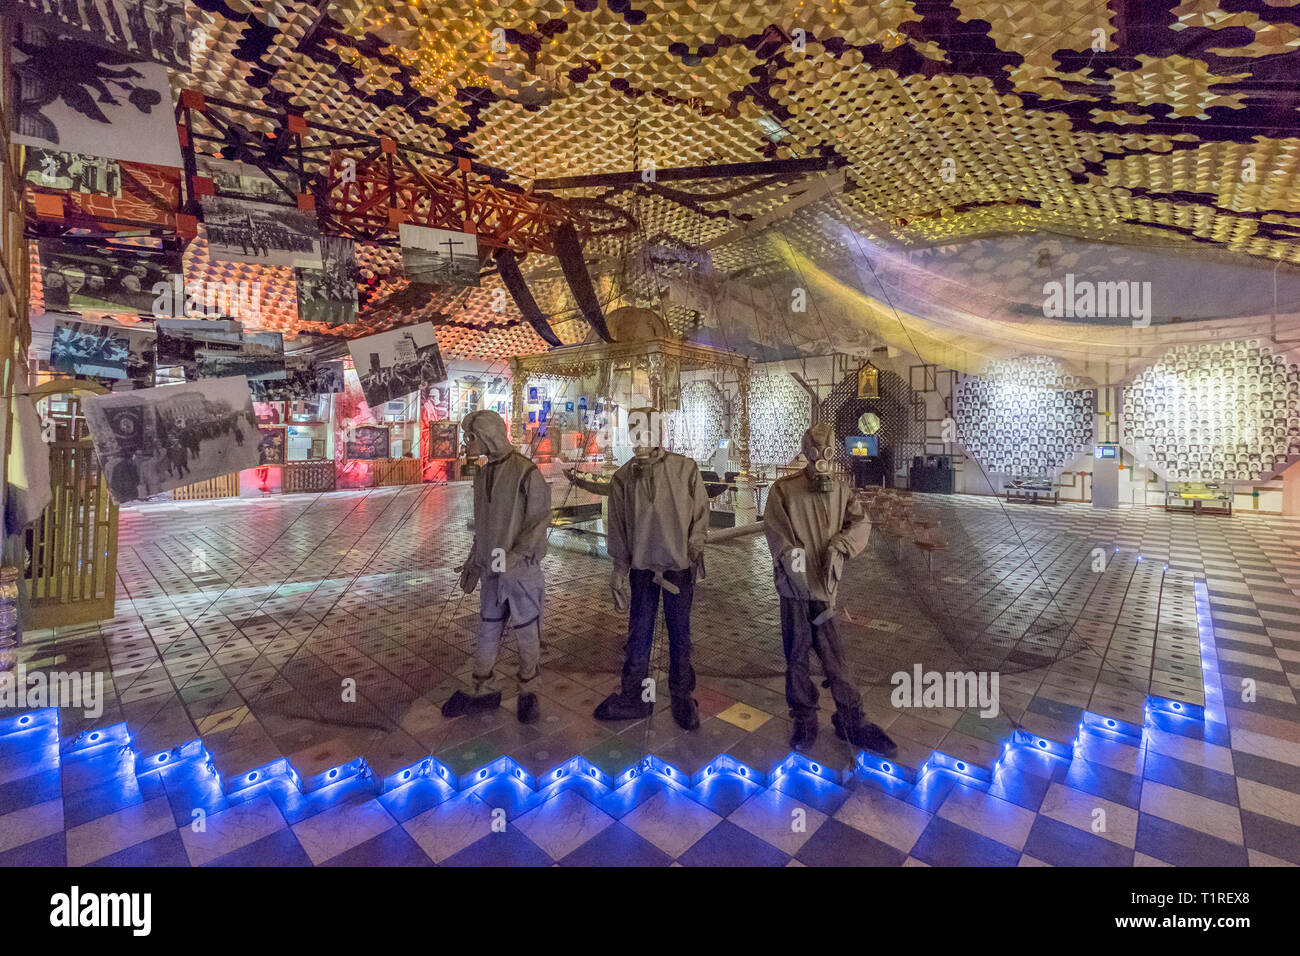 Exhibit at the Chernobyl Museum in Kiev, Ukraine. - Stock Image